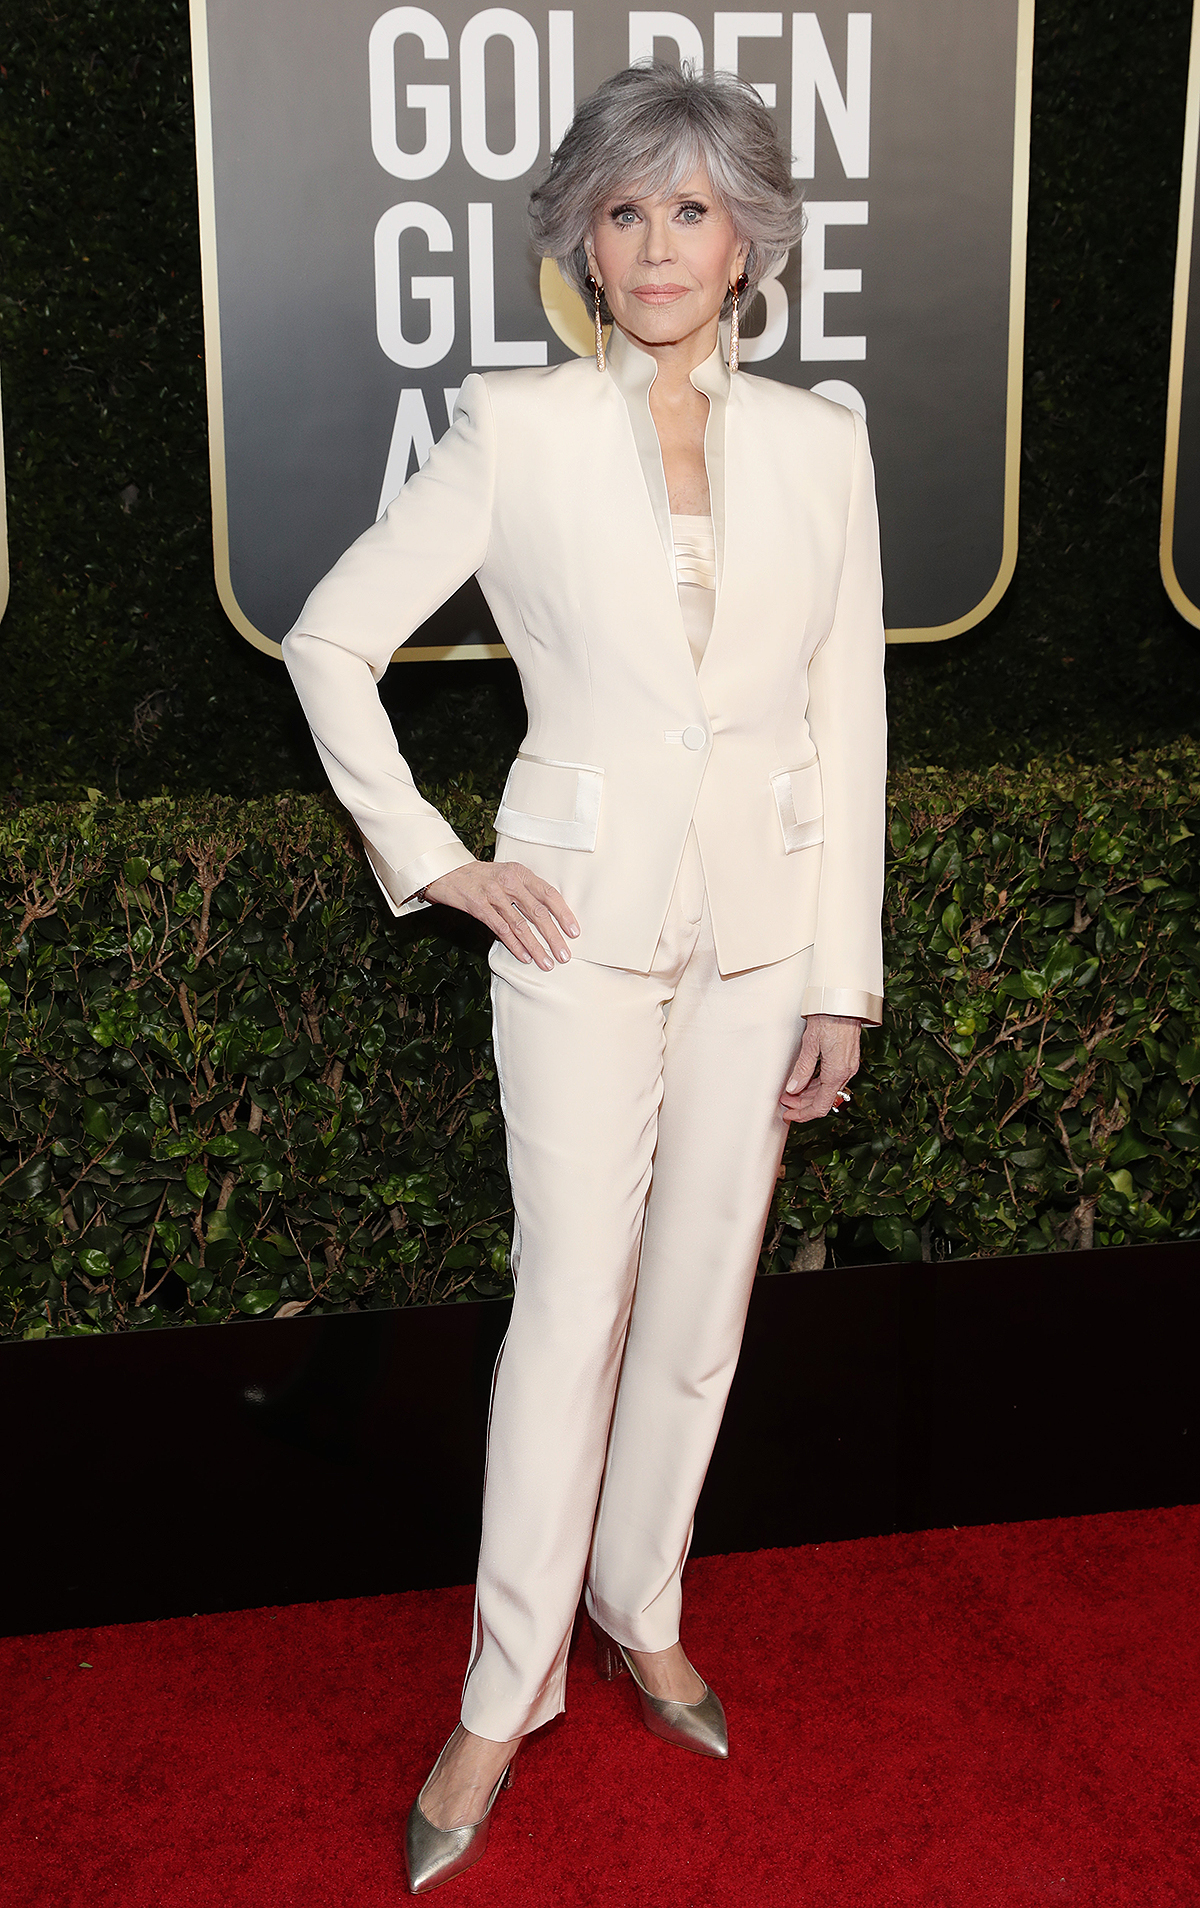 Jane Fonda attends the 78th Annual Golden Globe Awards held at The Beverly Hilton and broadcast on February 28, 2021